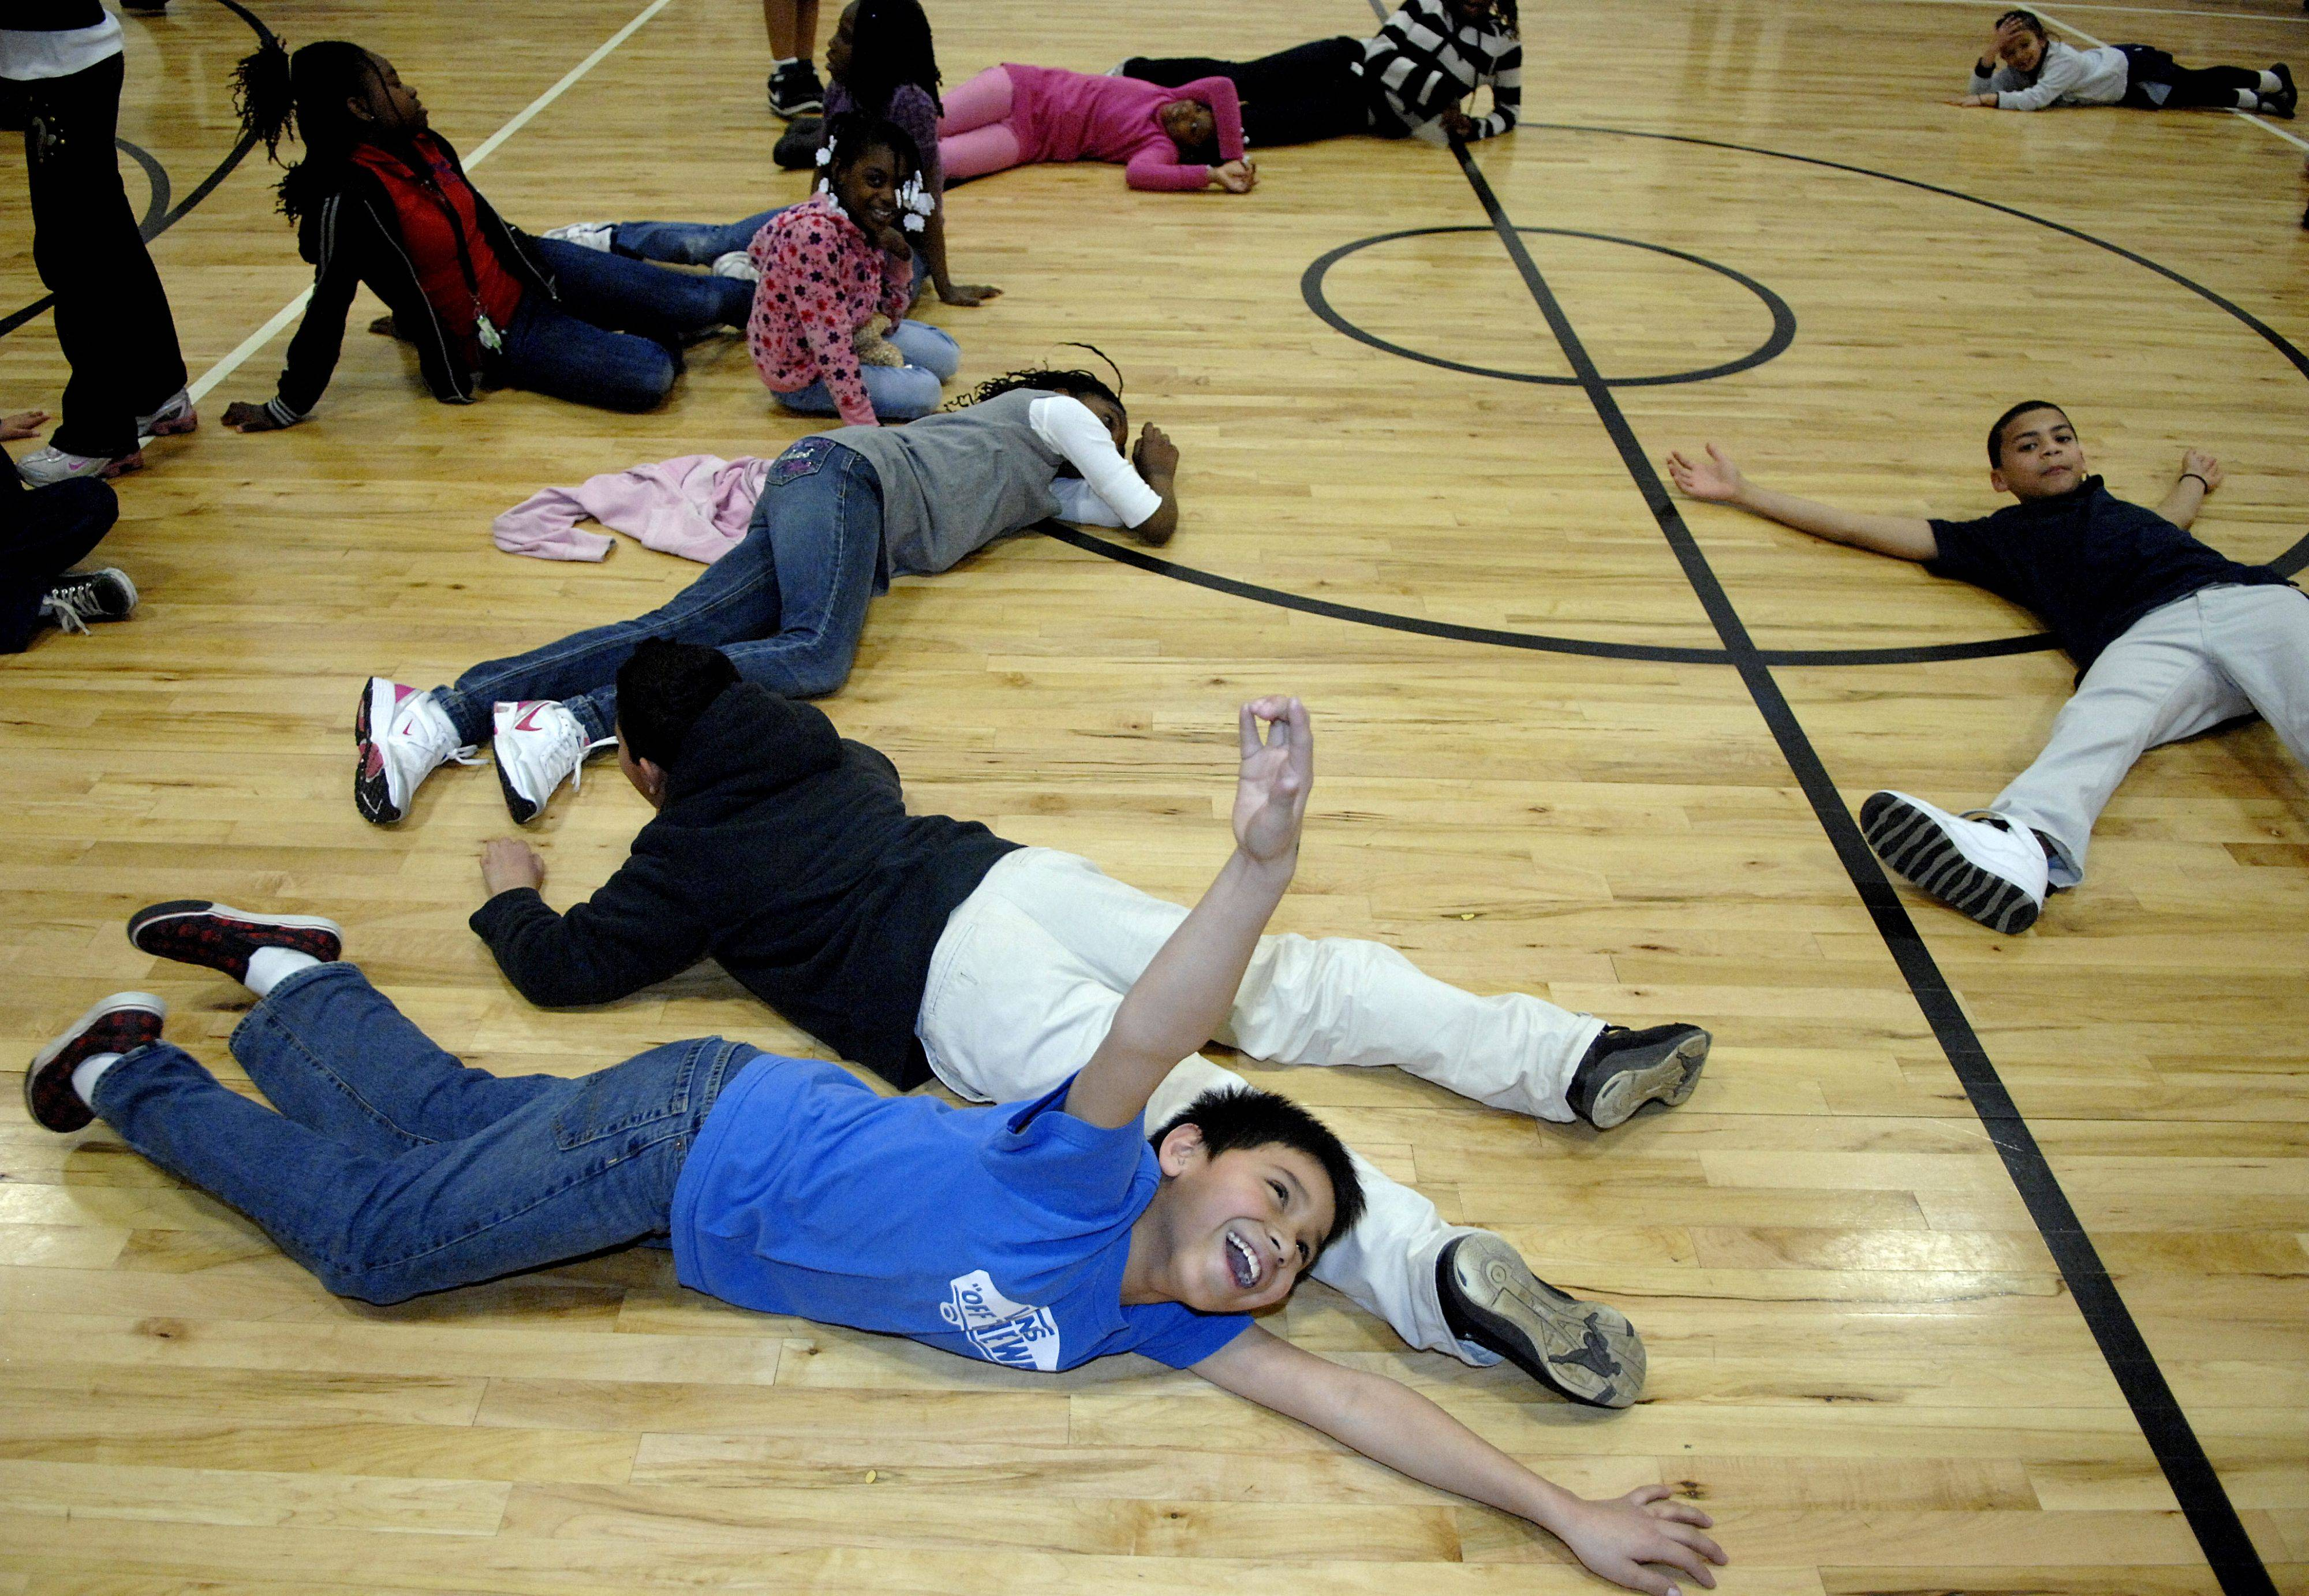 Eduardo Perez, 9, of Elgin, makes a dramatic scene with others at the Boys and Girls Club of Elgin after participating in a Guinness Book of World Records attempt to break the current record for most people doing jumping jacks at the same time on Tuesday, March 22. Dozens of kids participated in the 2-minute challenge and were wiped out afterwards.